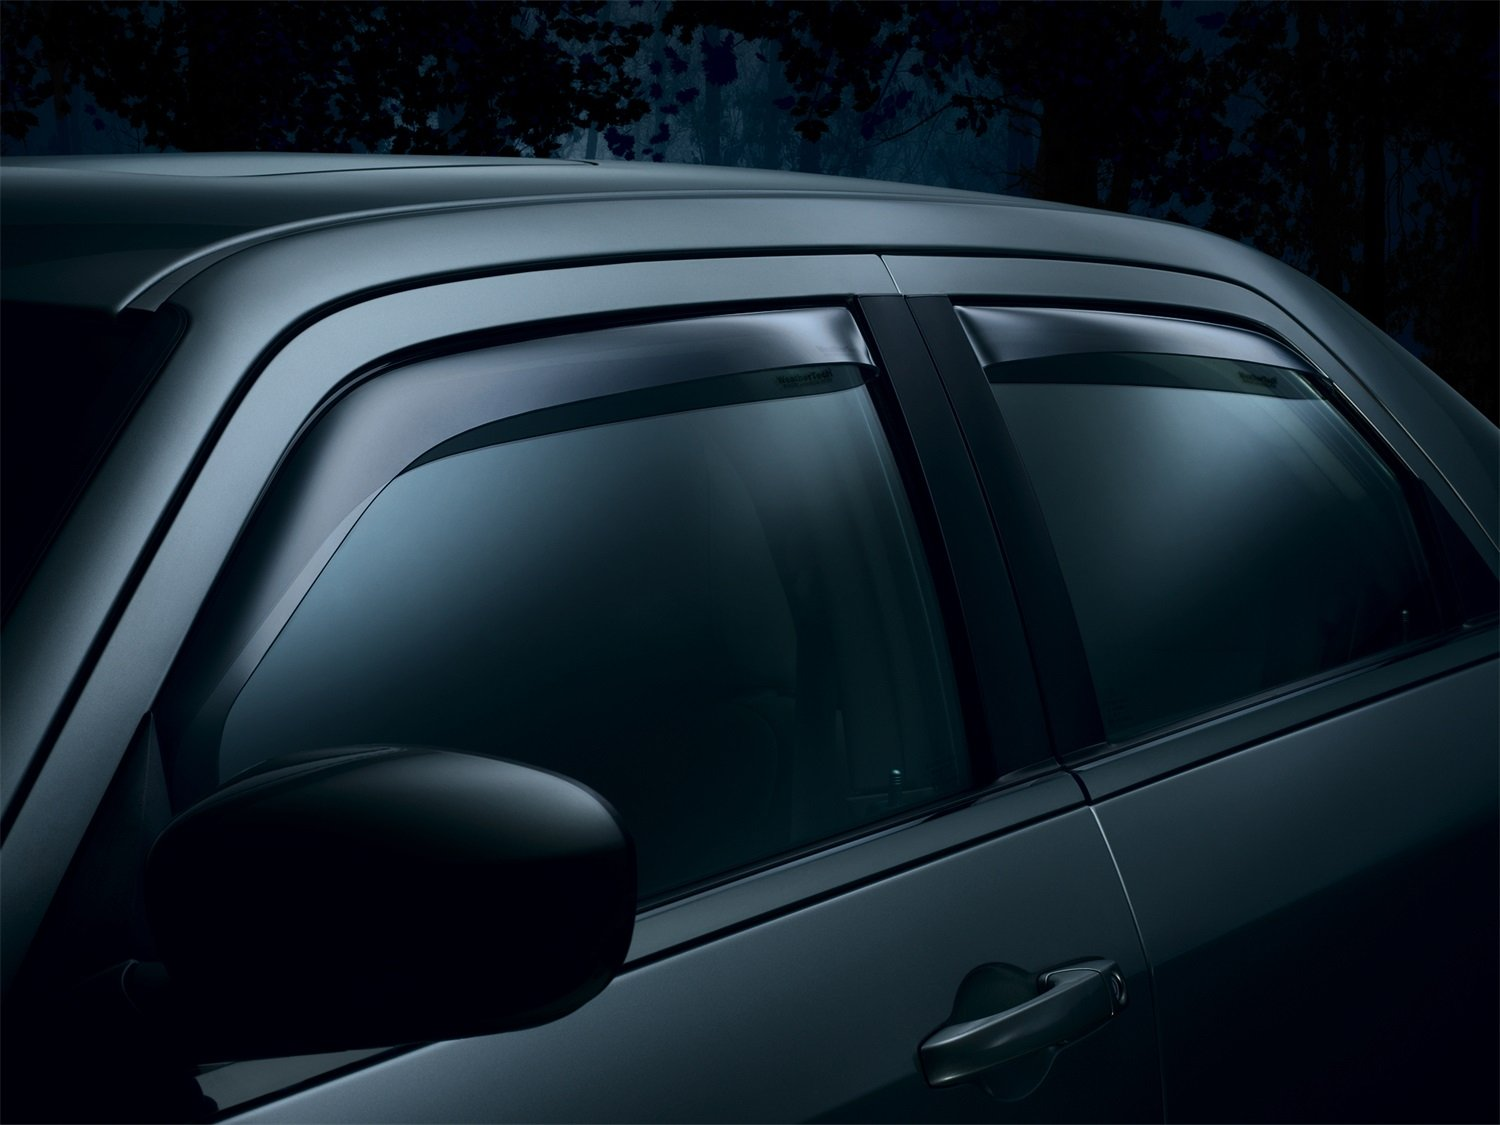 WeatherTech Custom Fit Front & Rear Side Window Deflectors for Toyota Tacoma Double Cab, Dark Smoke